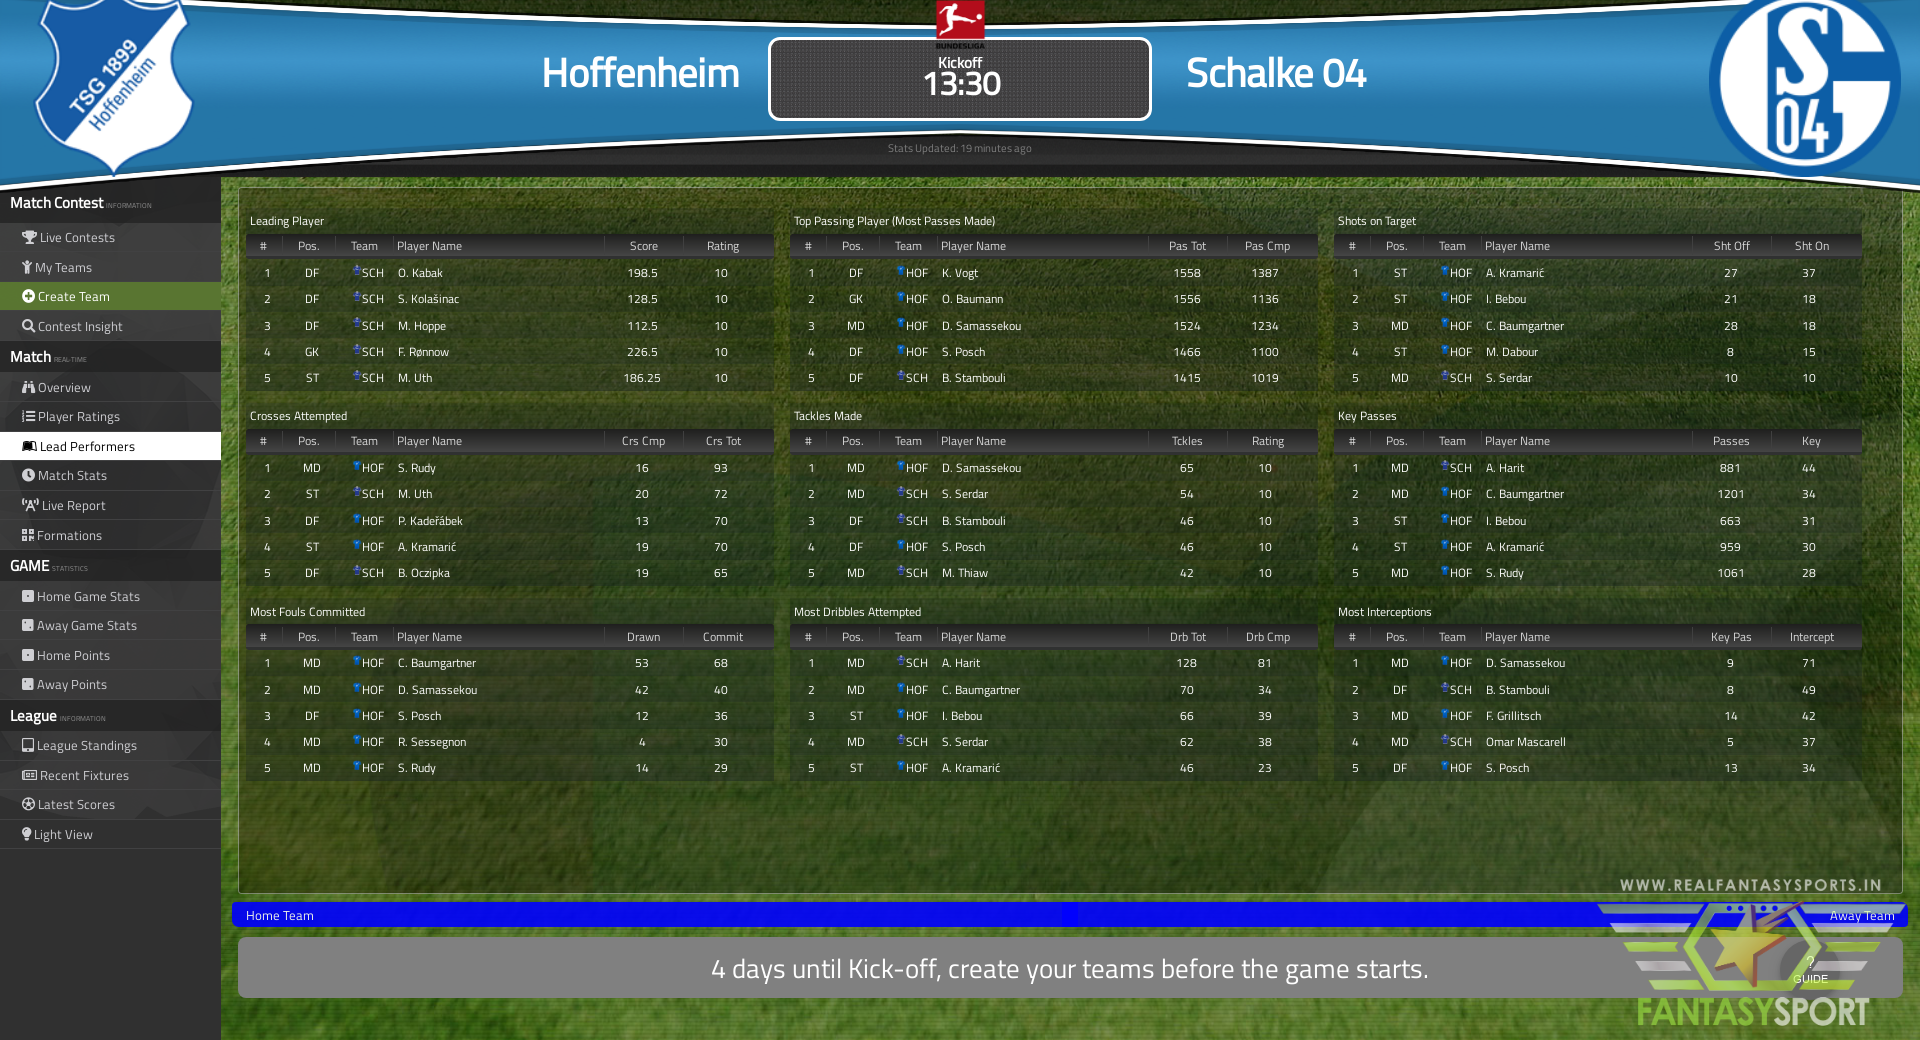 Hoffenheim Vs Schalke 04 Fantasy Football Team